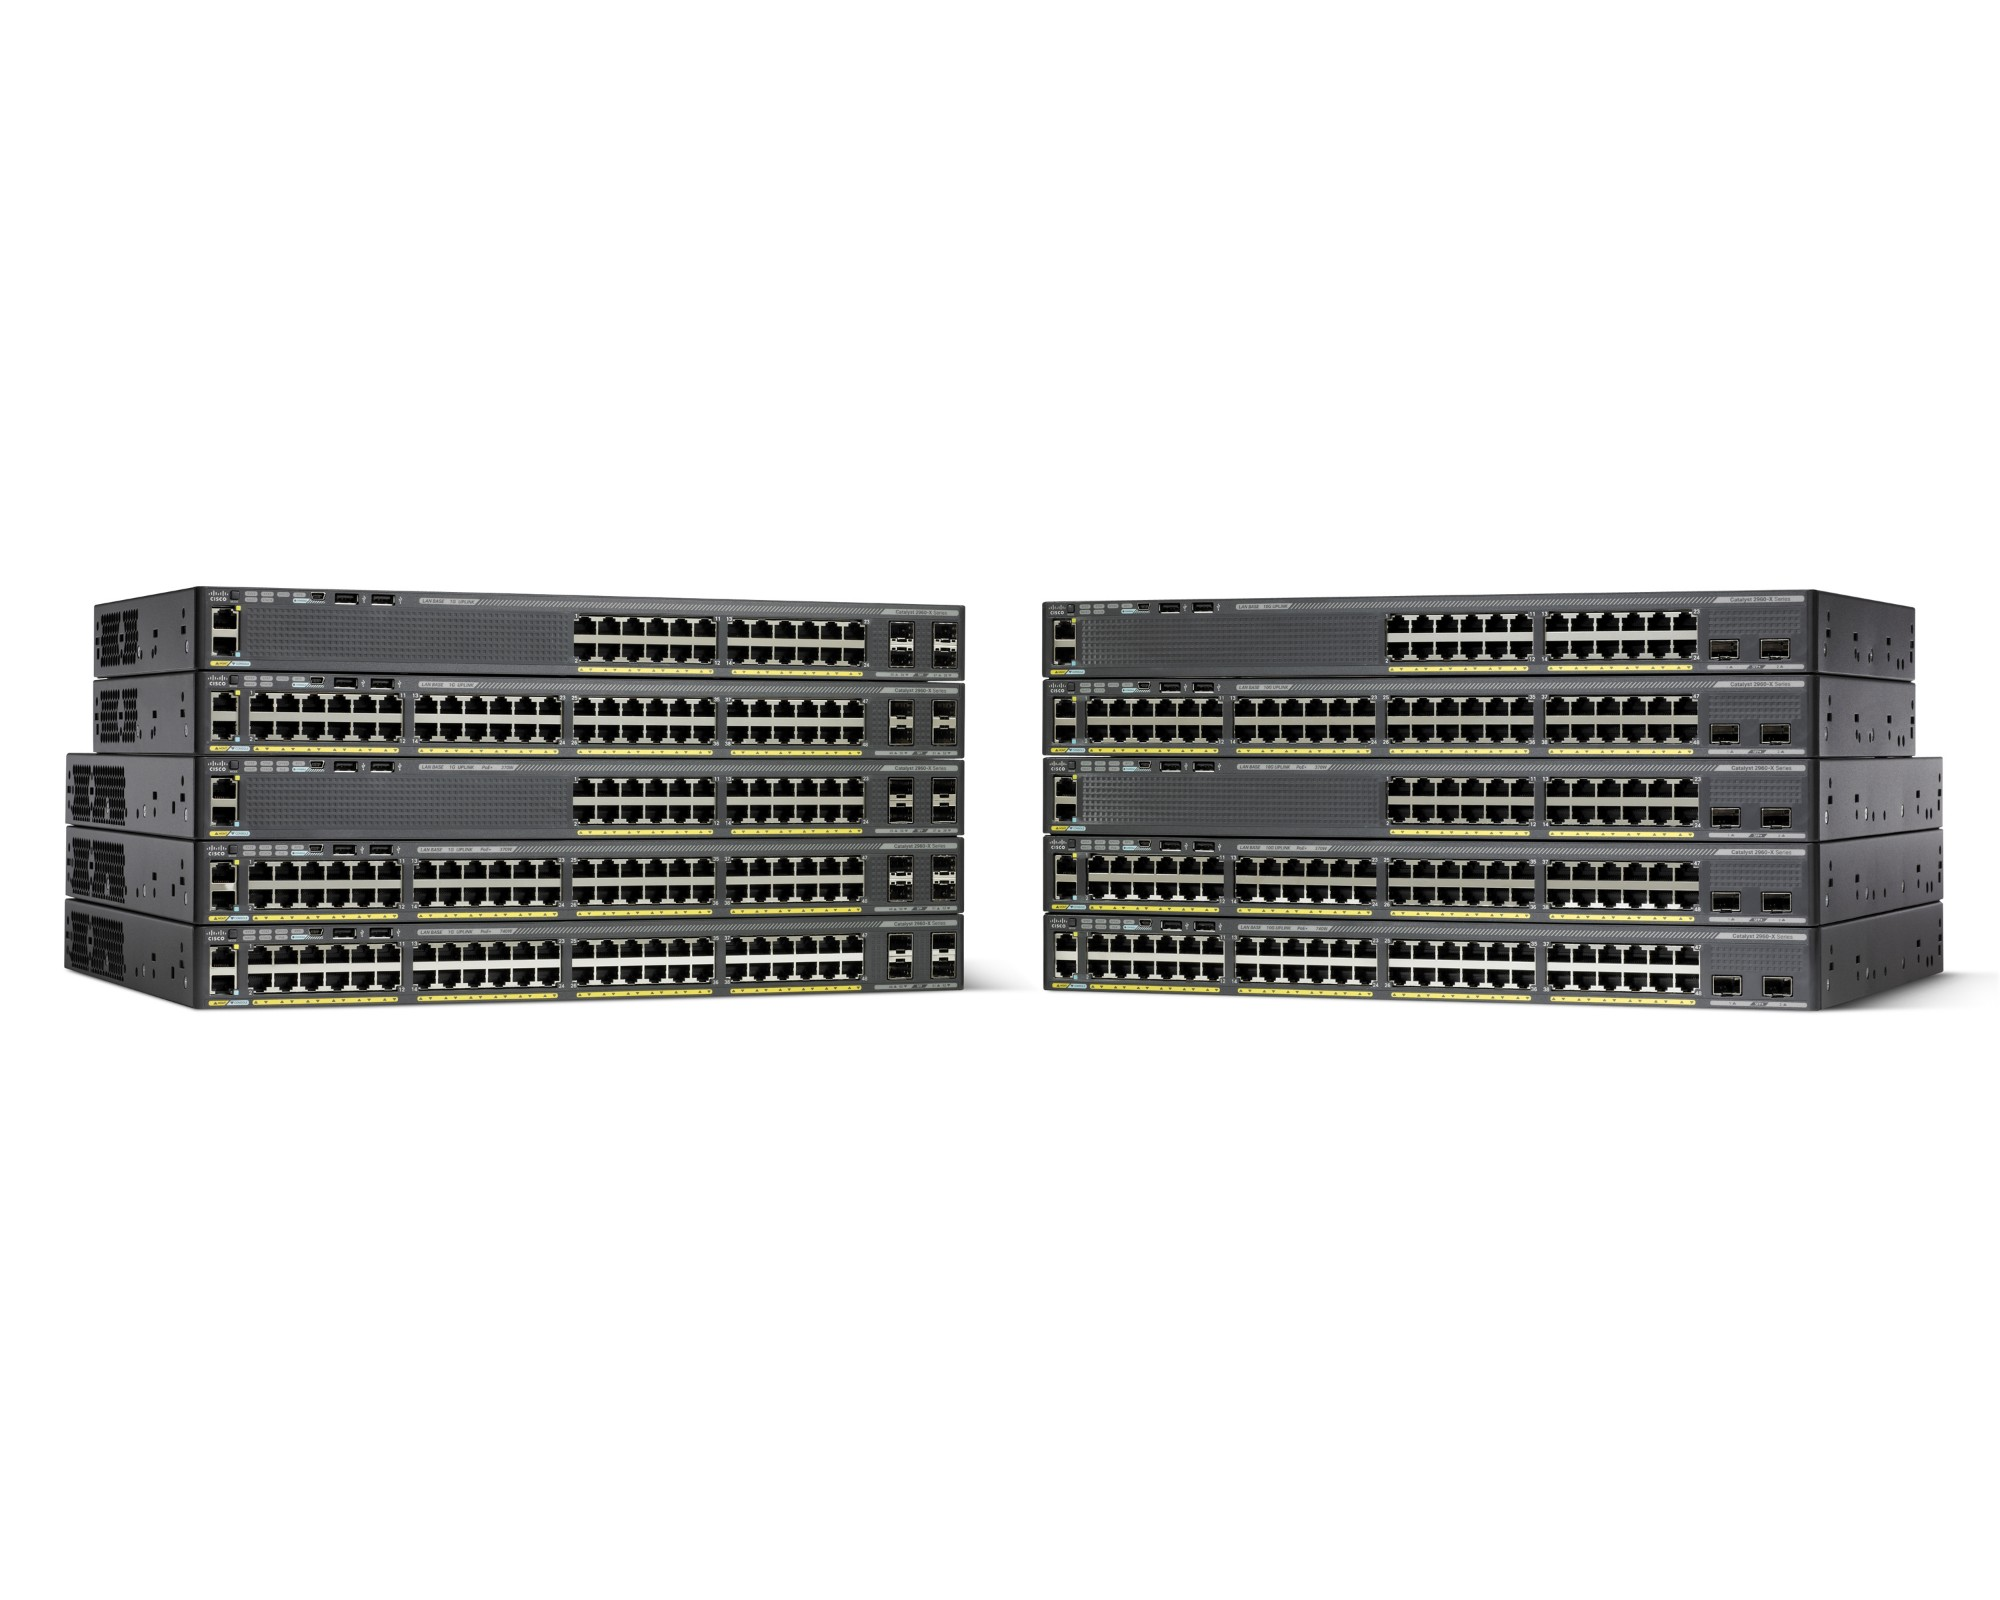 Cisco Catalyst WS-C2960XR-24PS-I switch Gestionado L2 Gigabit Ethernet (10/100/1000) Negro Energía sobre Ethernet (PoE)